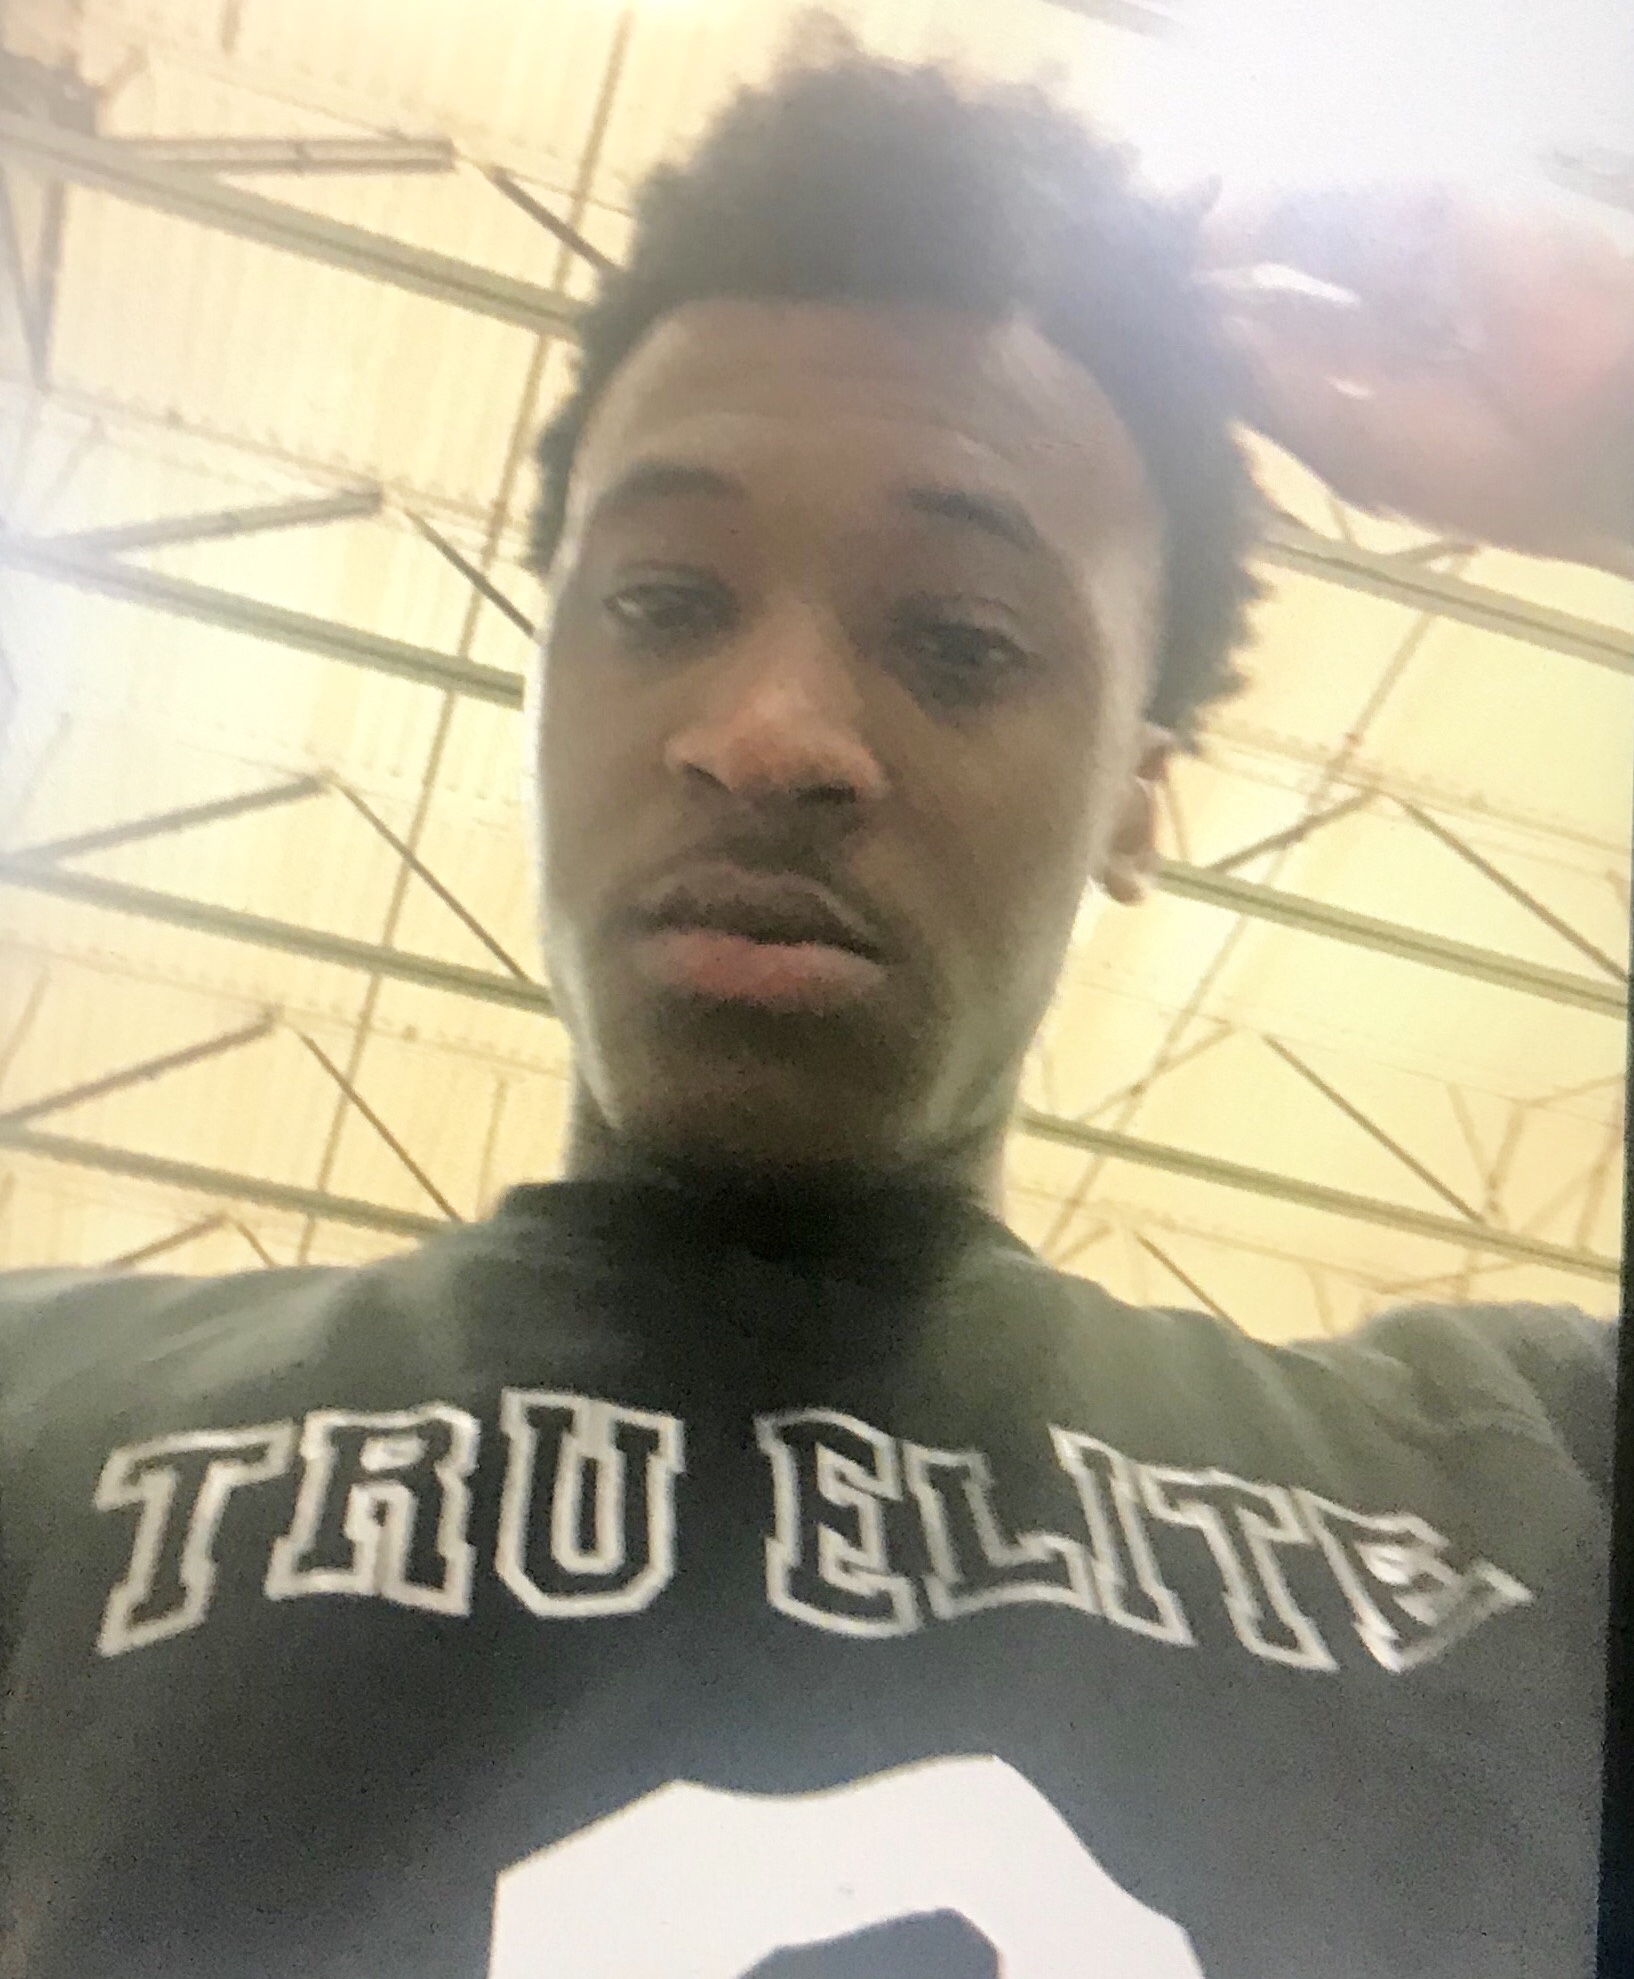 25-year-old posed as teen to play high school basketball